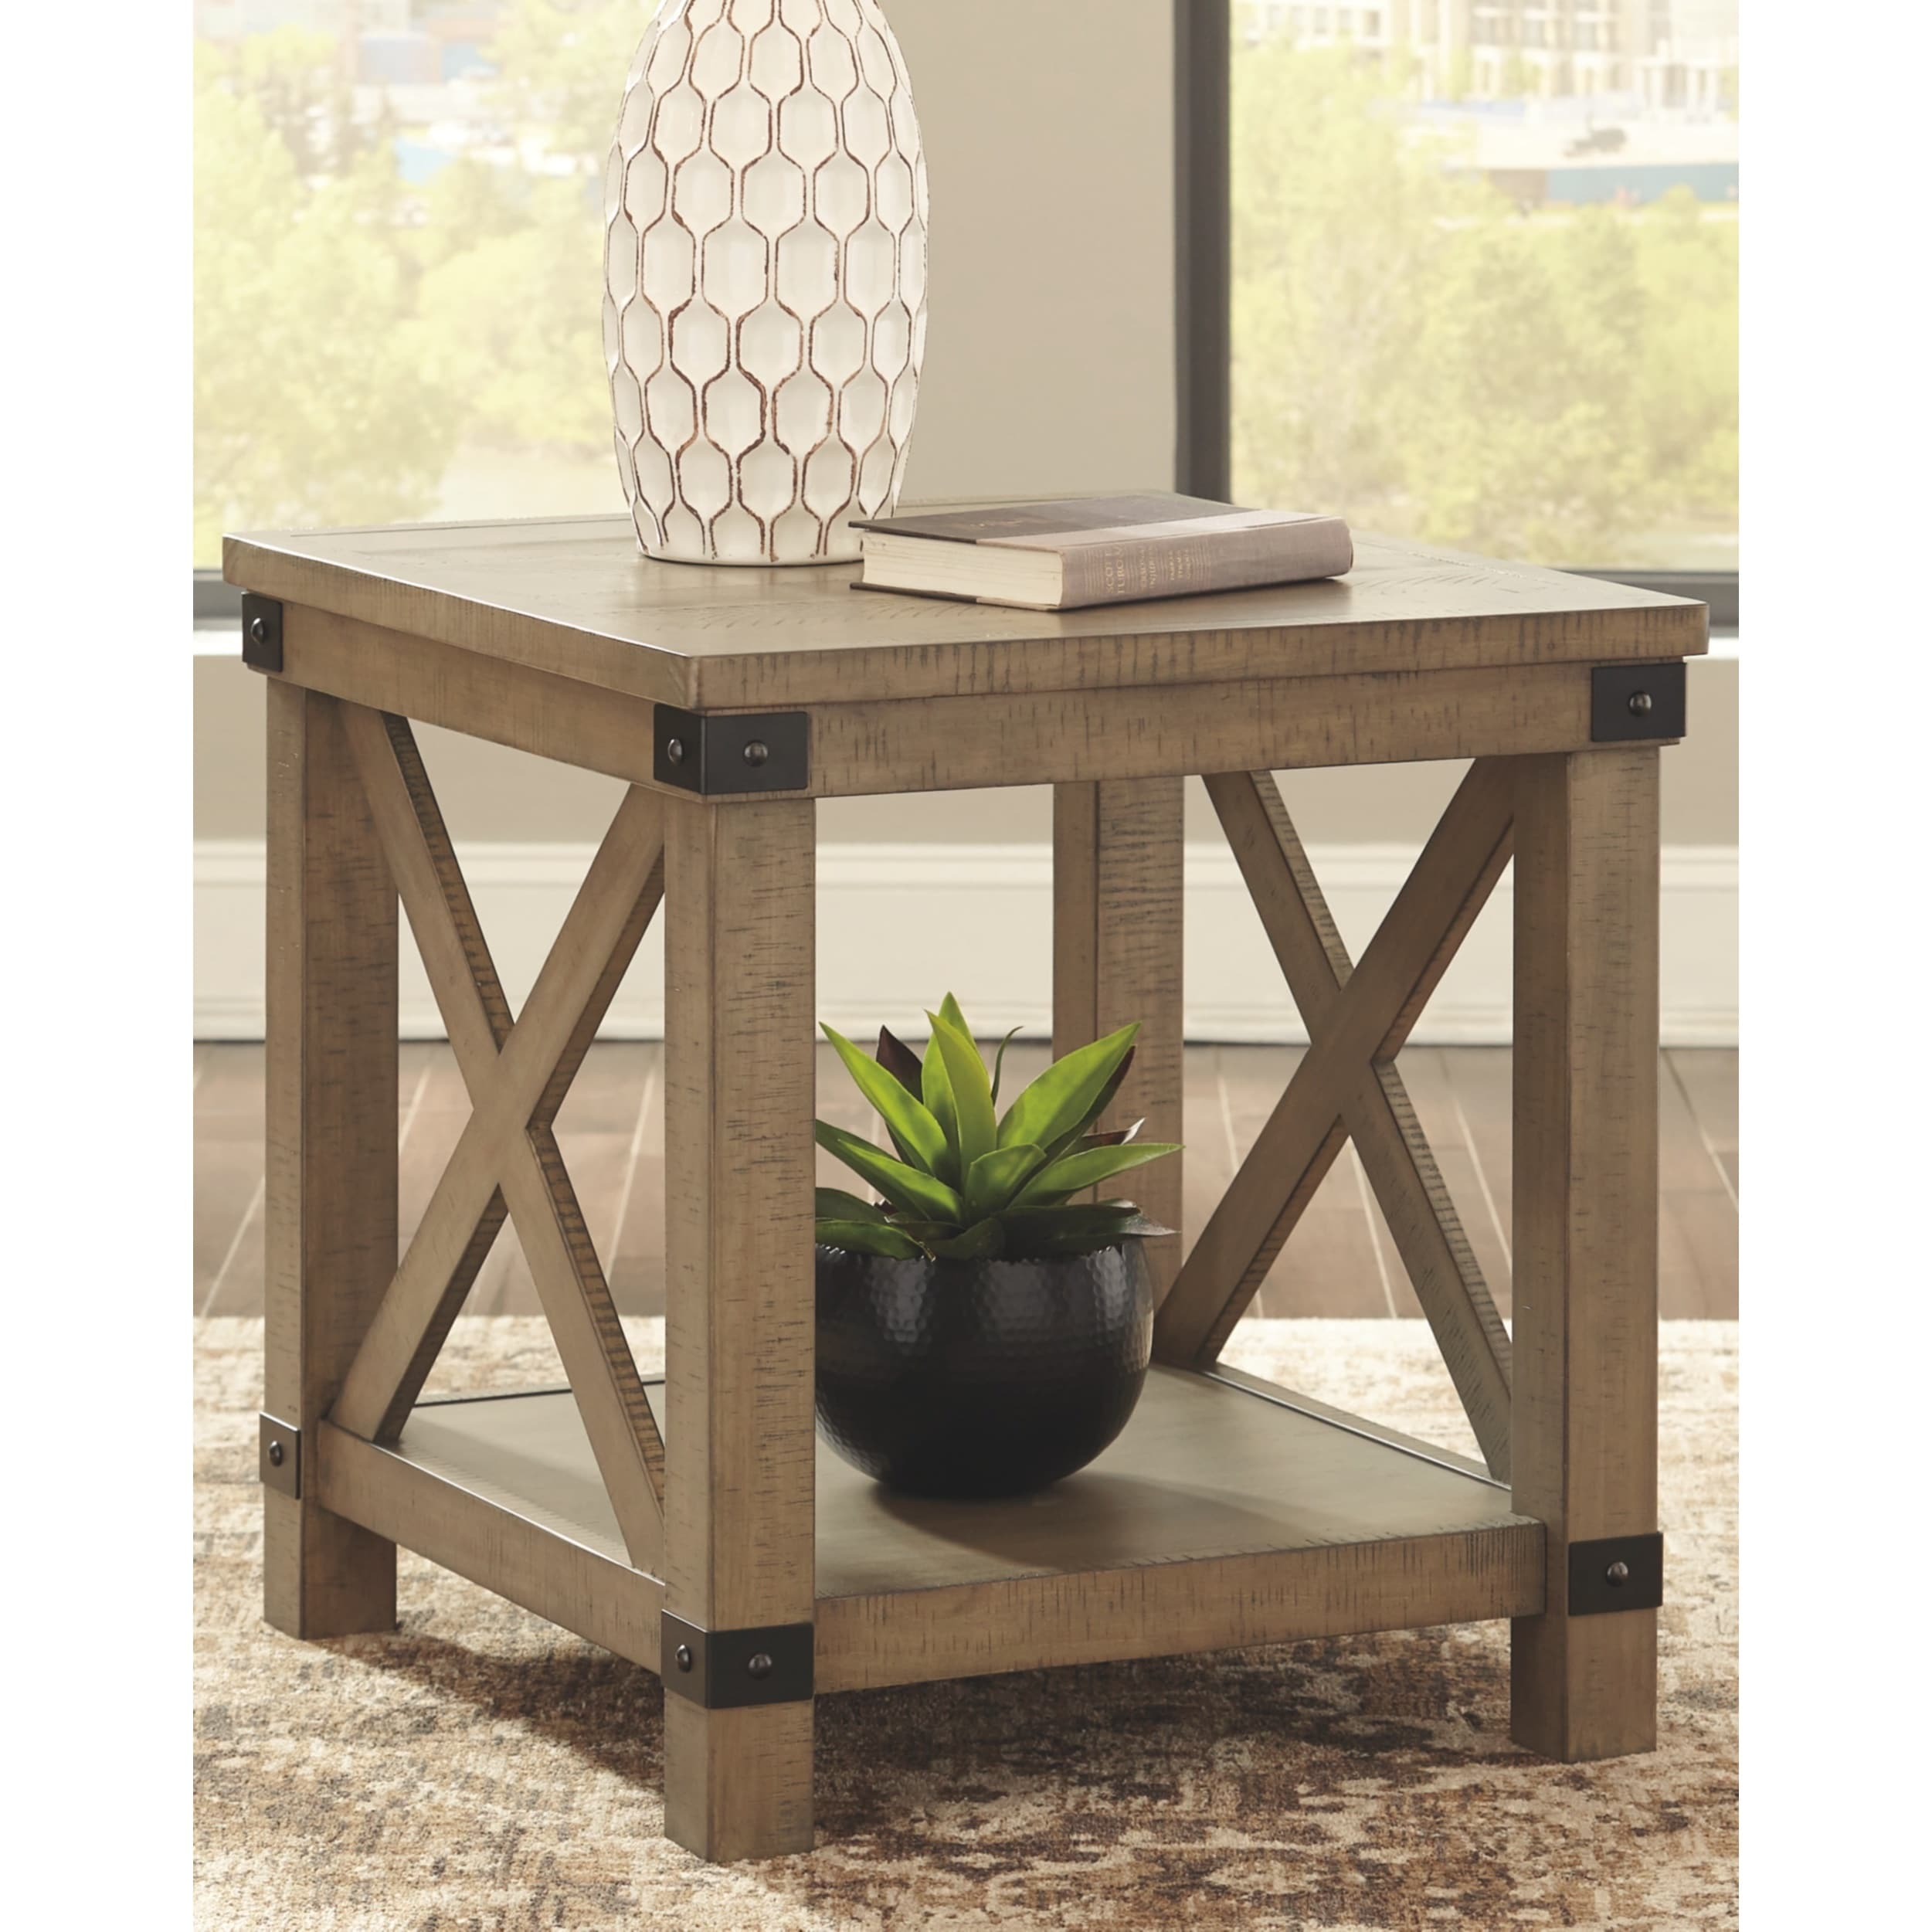 Aldwin End Table Gray Overstock 25893810